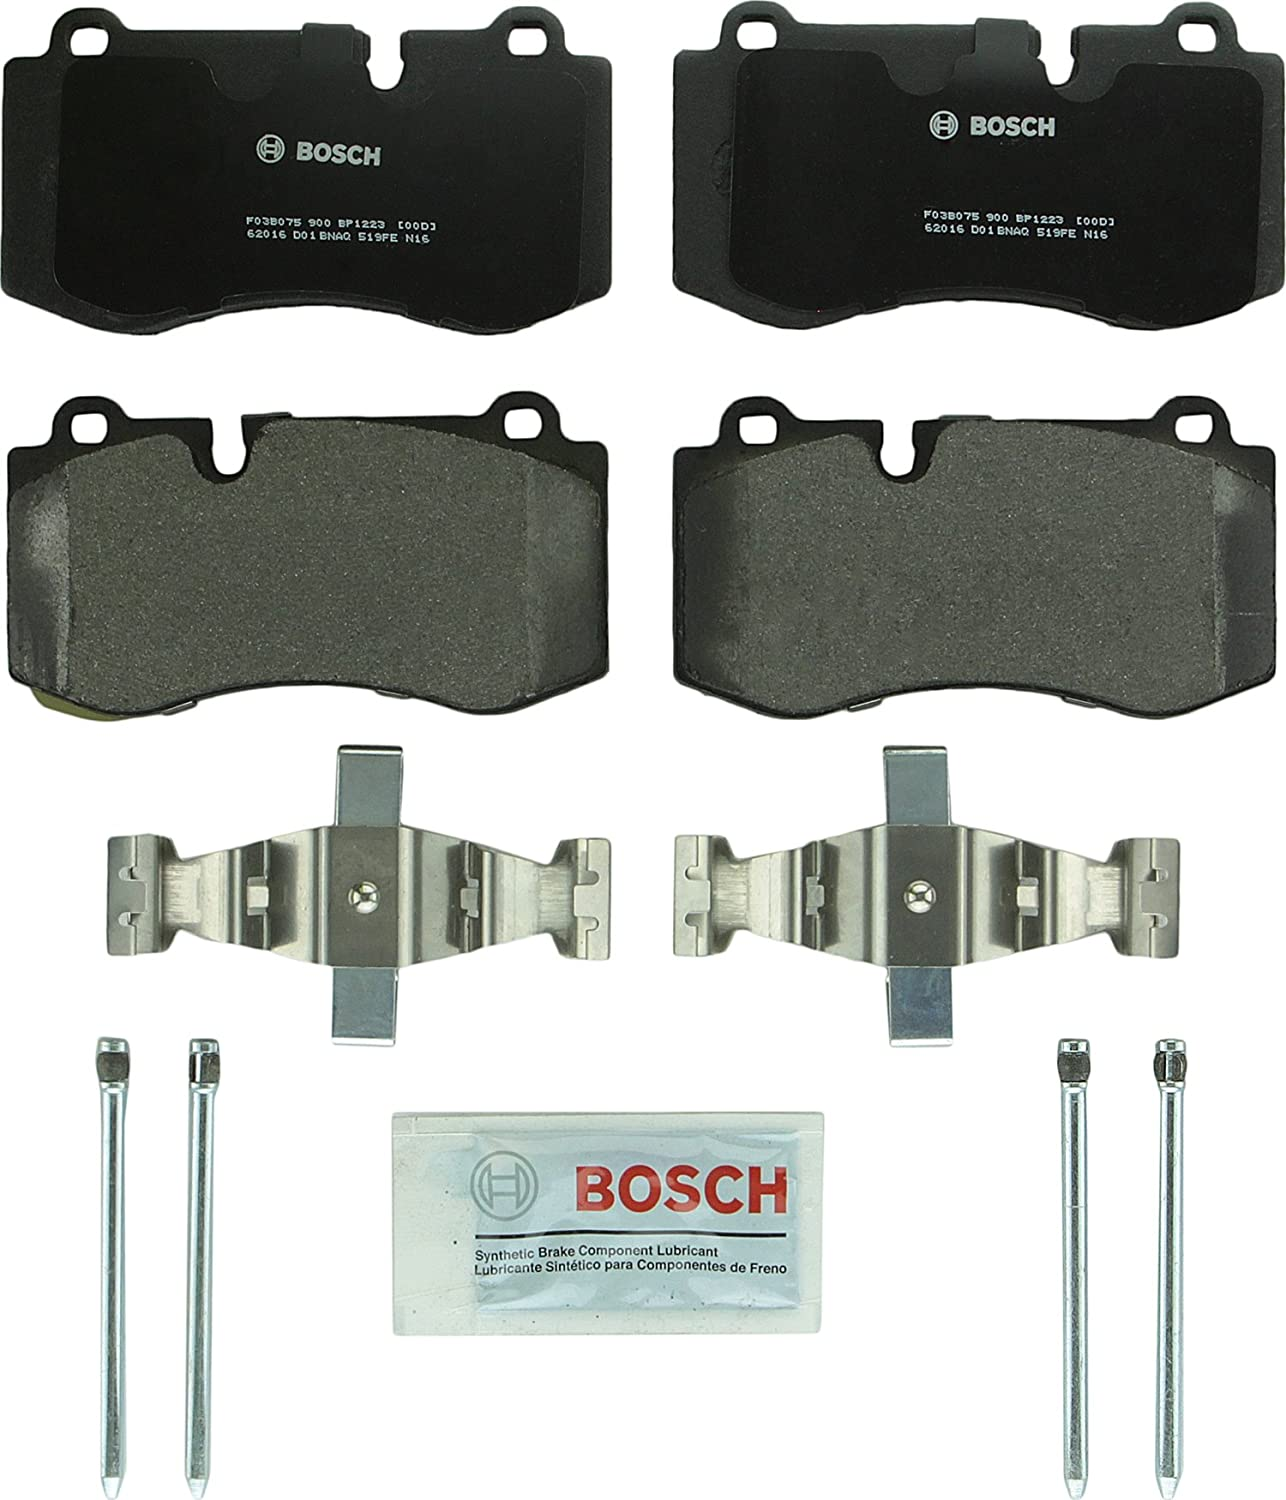 Bosch BP1223 QuietCast Premium Disc Brake Pad Set